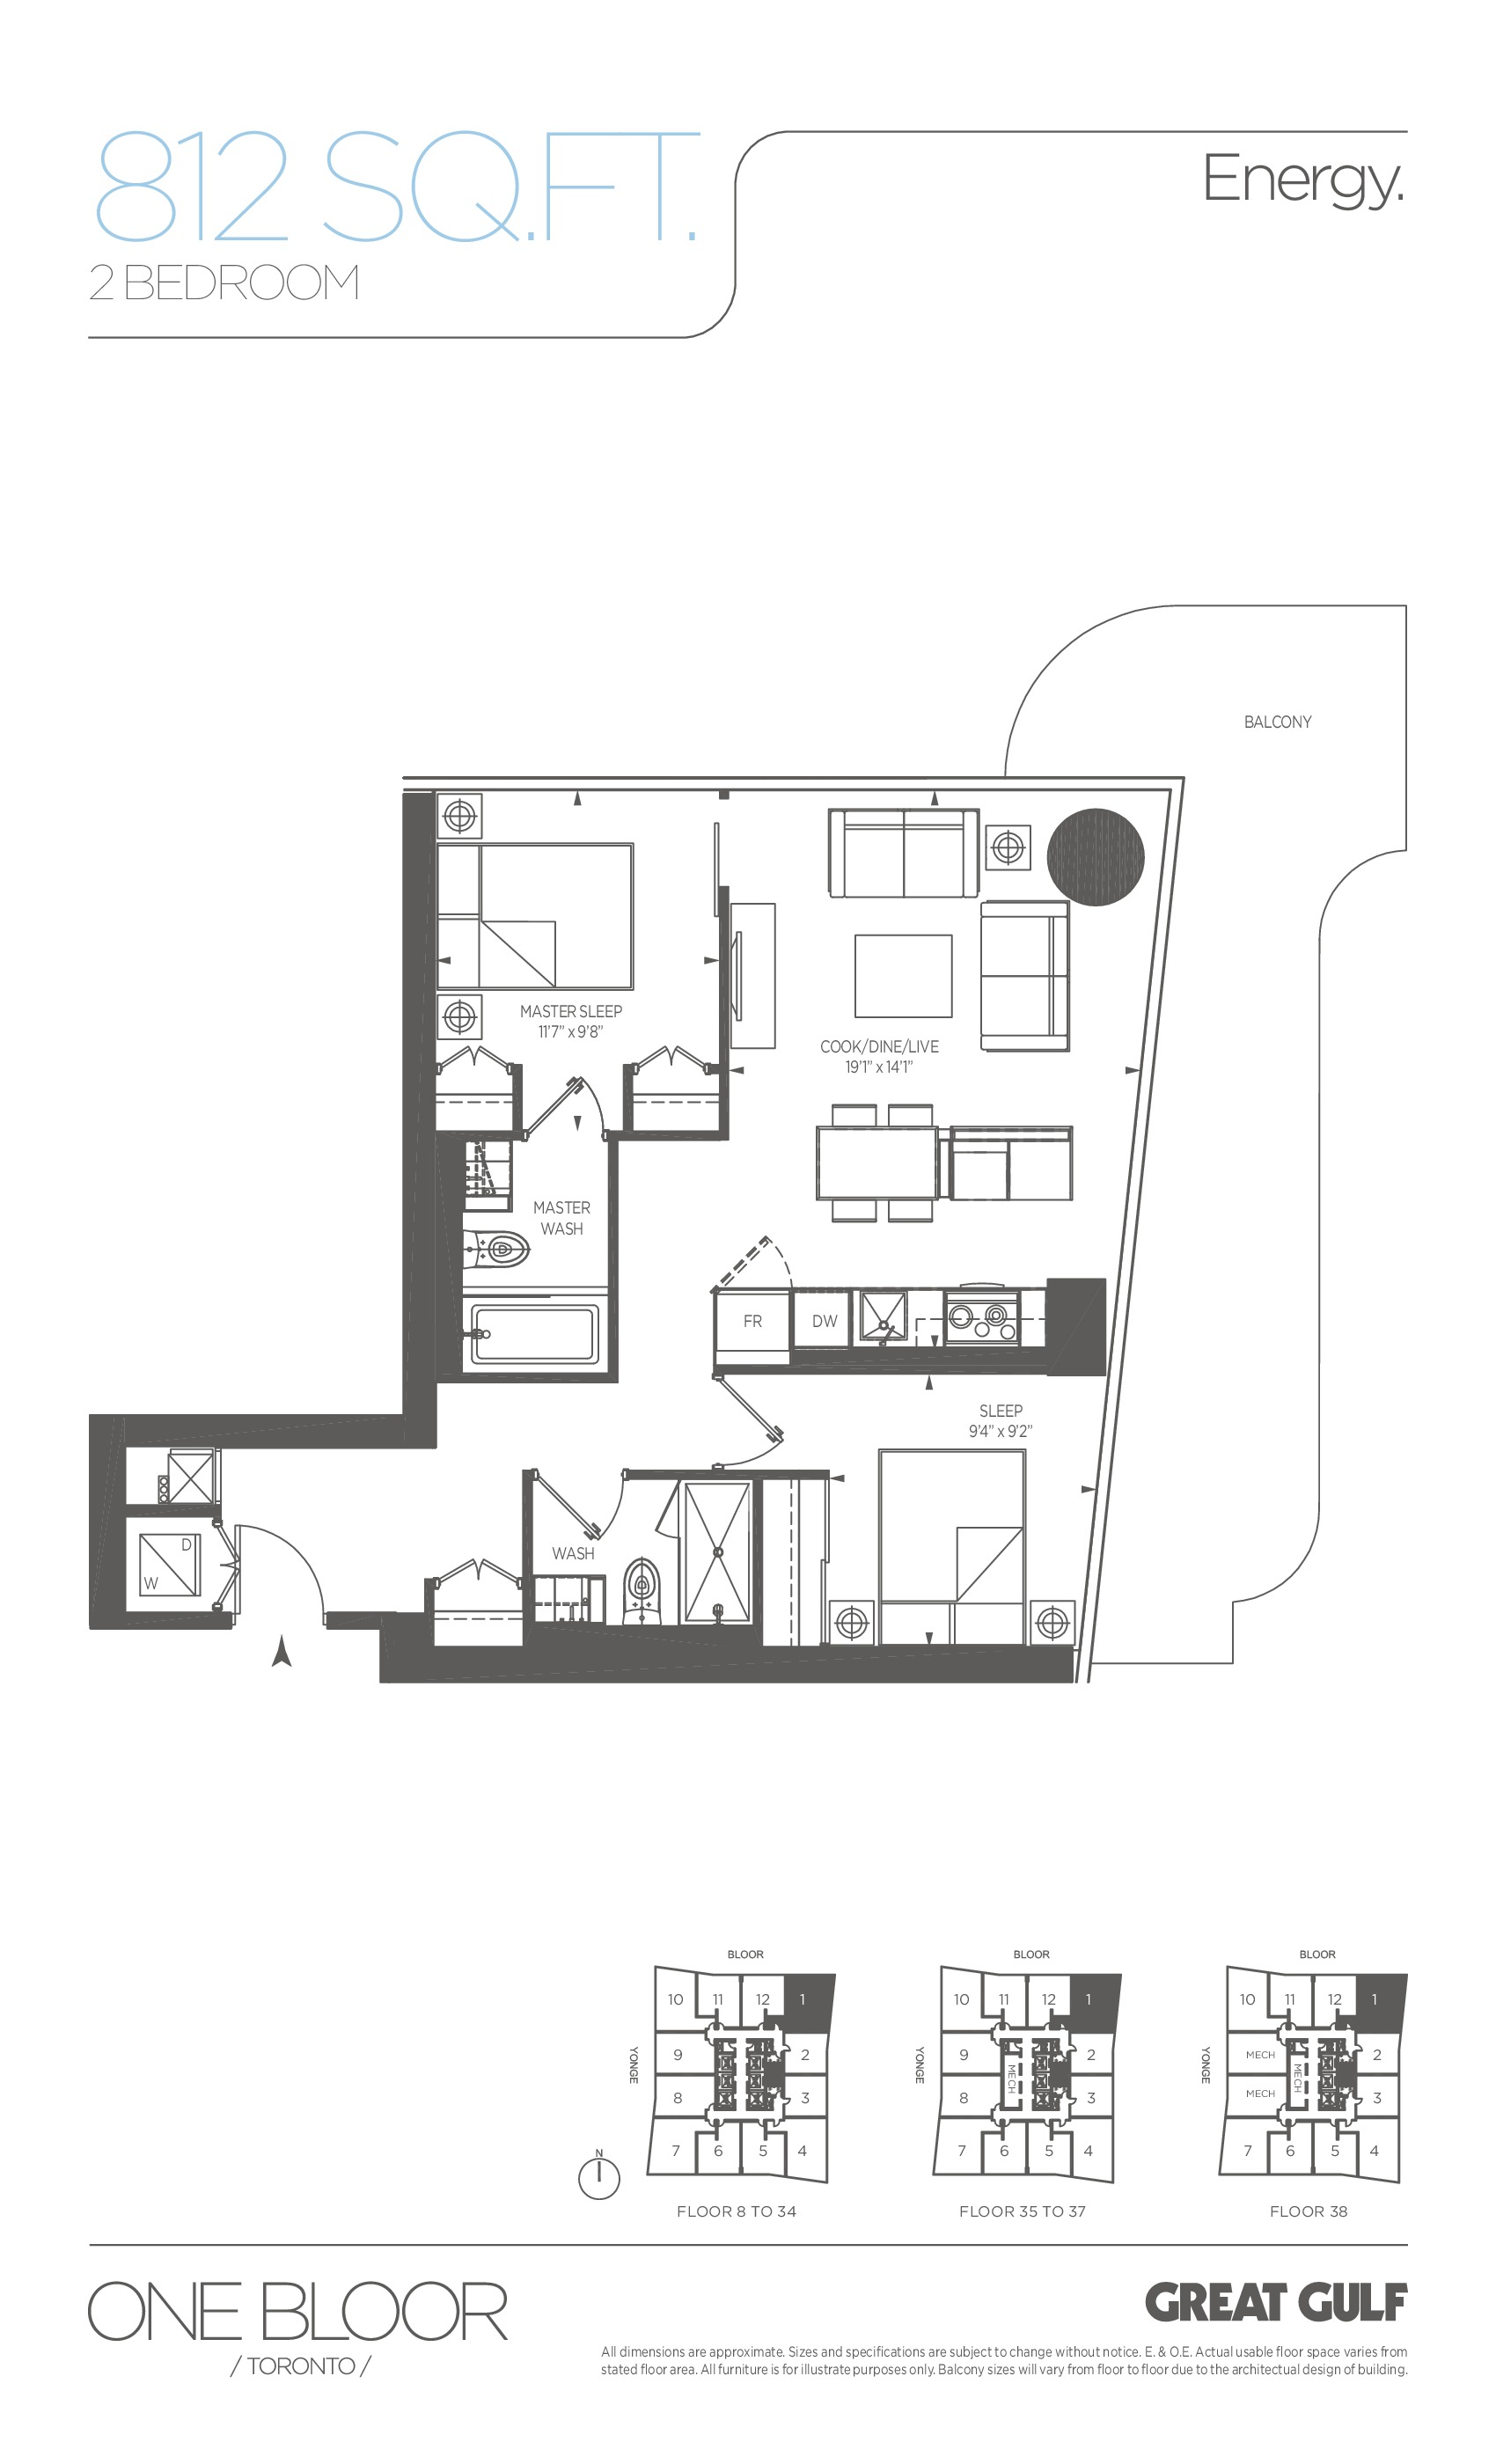 Energy Floor Plan at One Bloor Condos - 812 sq.ft